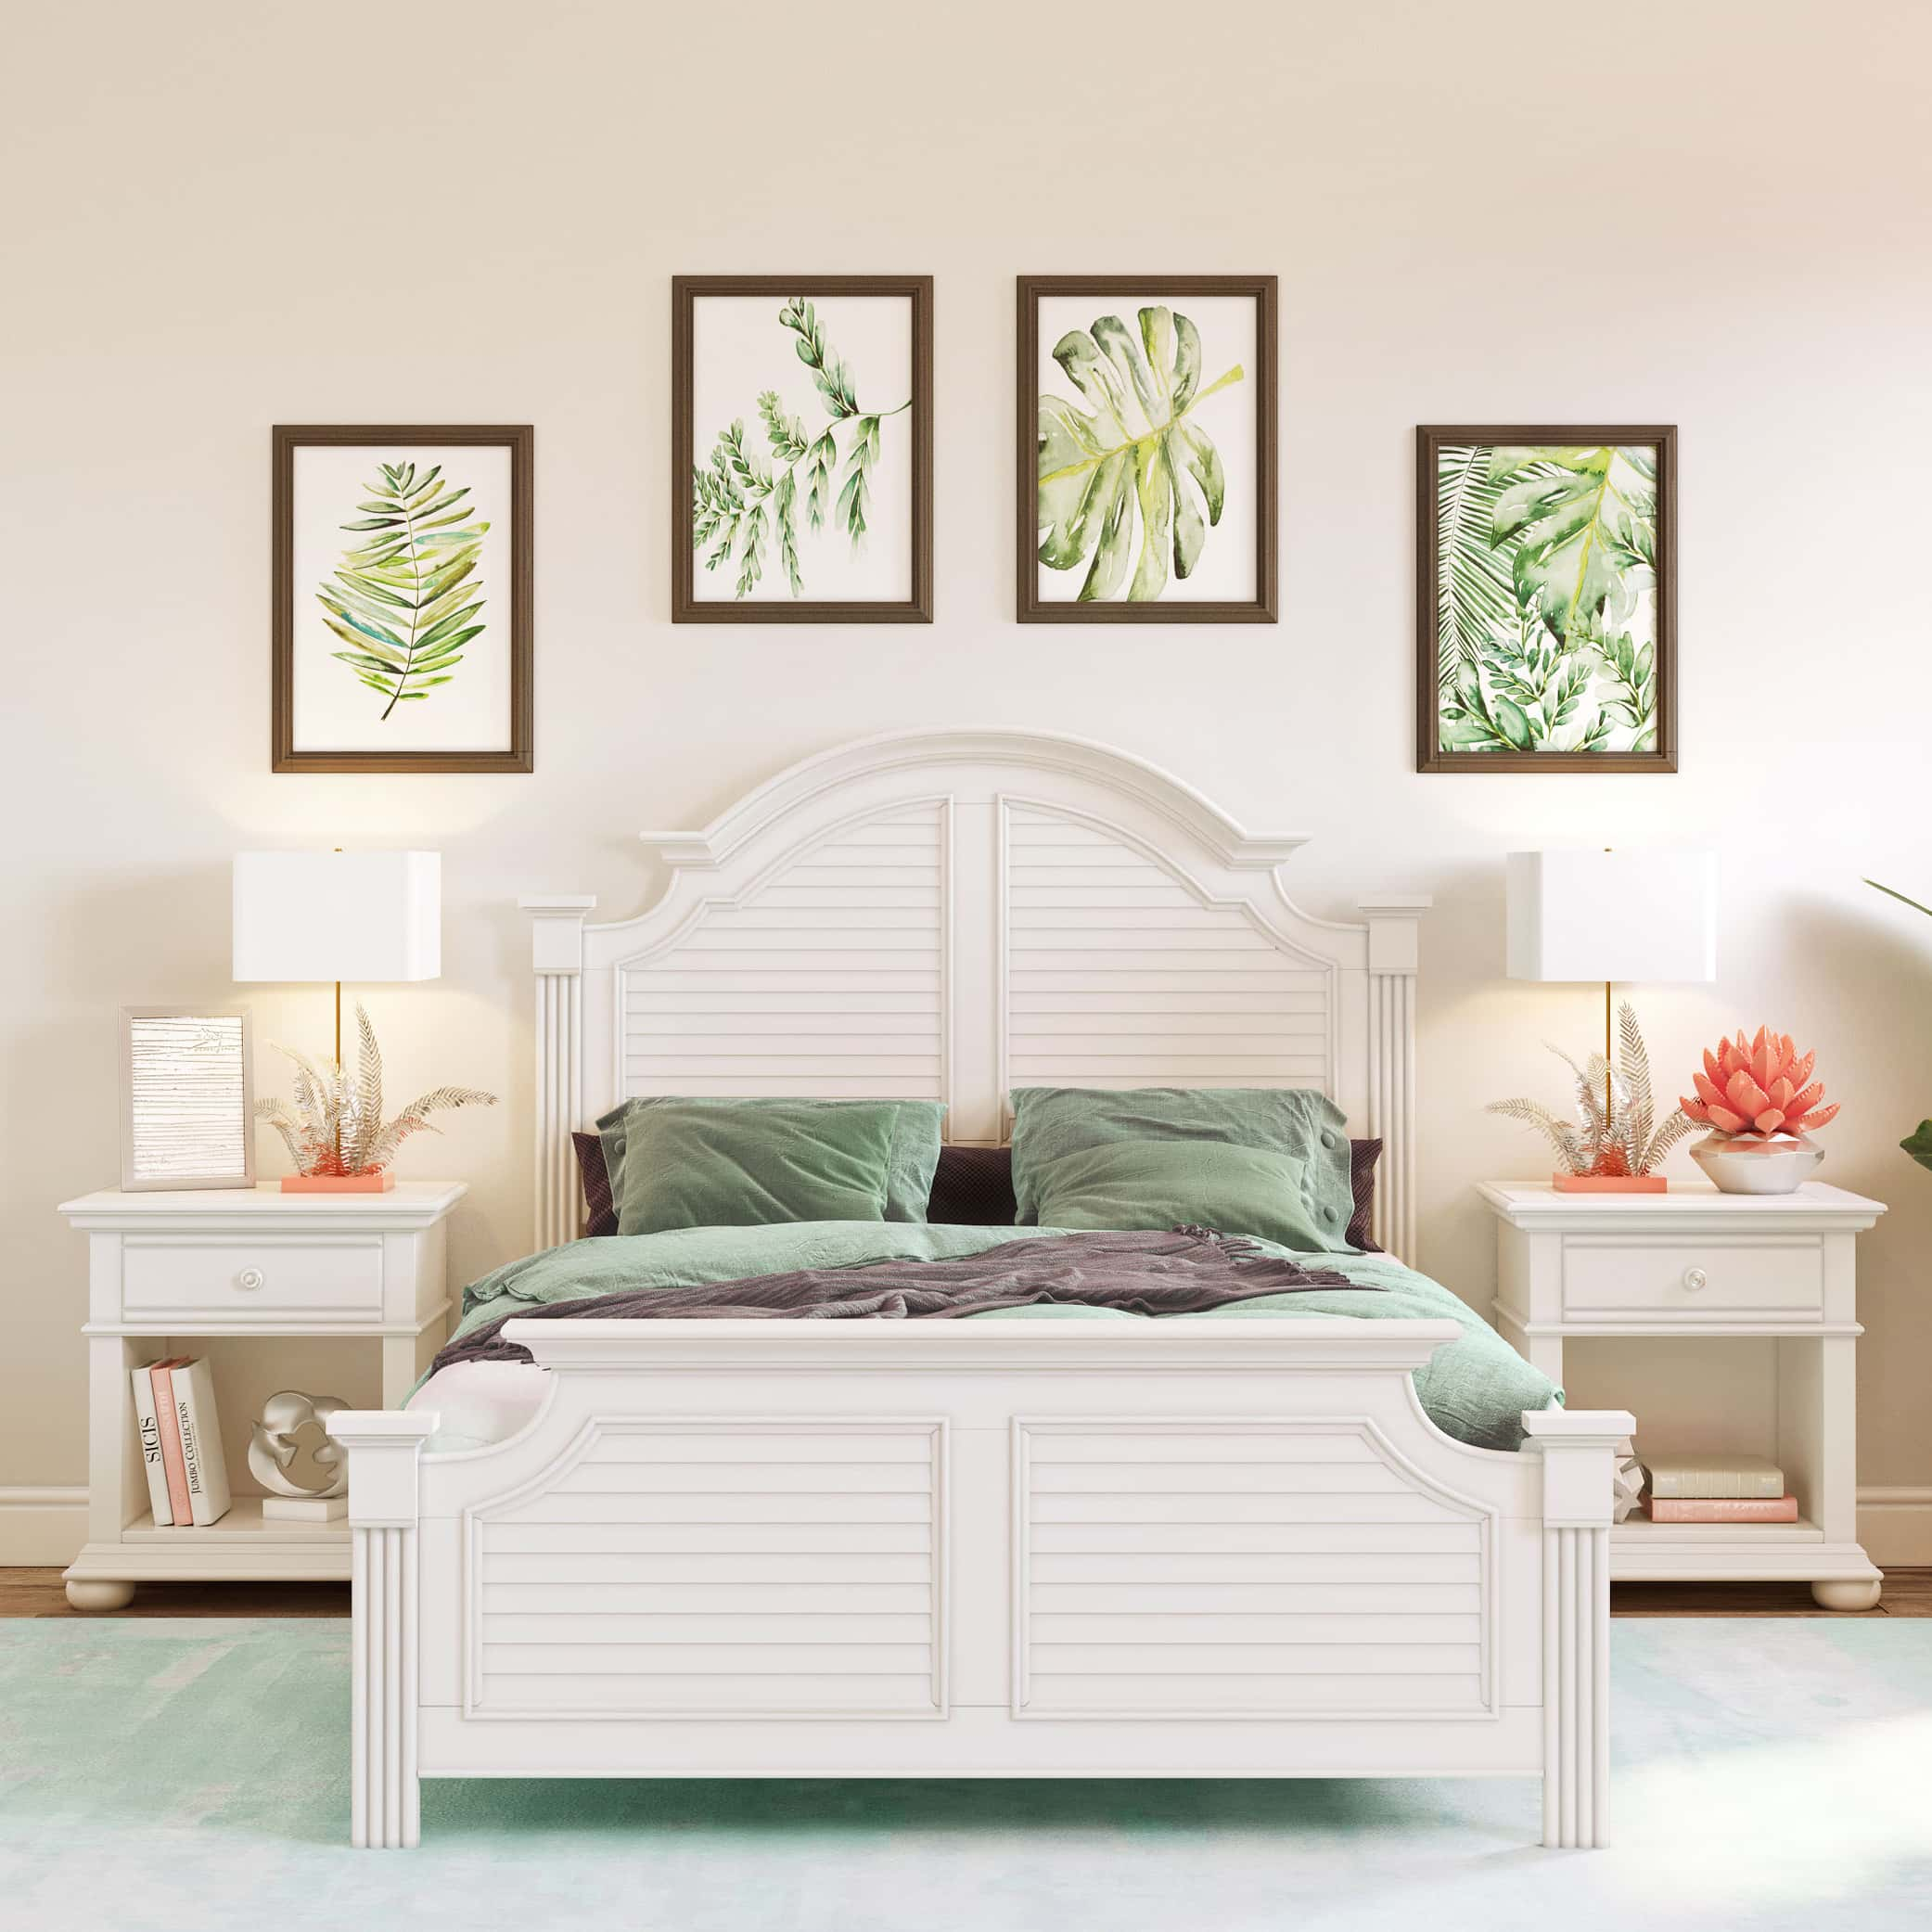 83 Bedroom Sets For Sale Clearwater Free